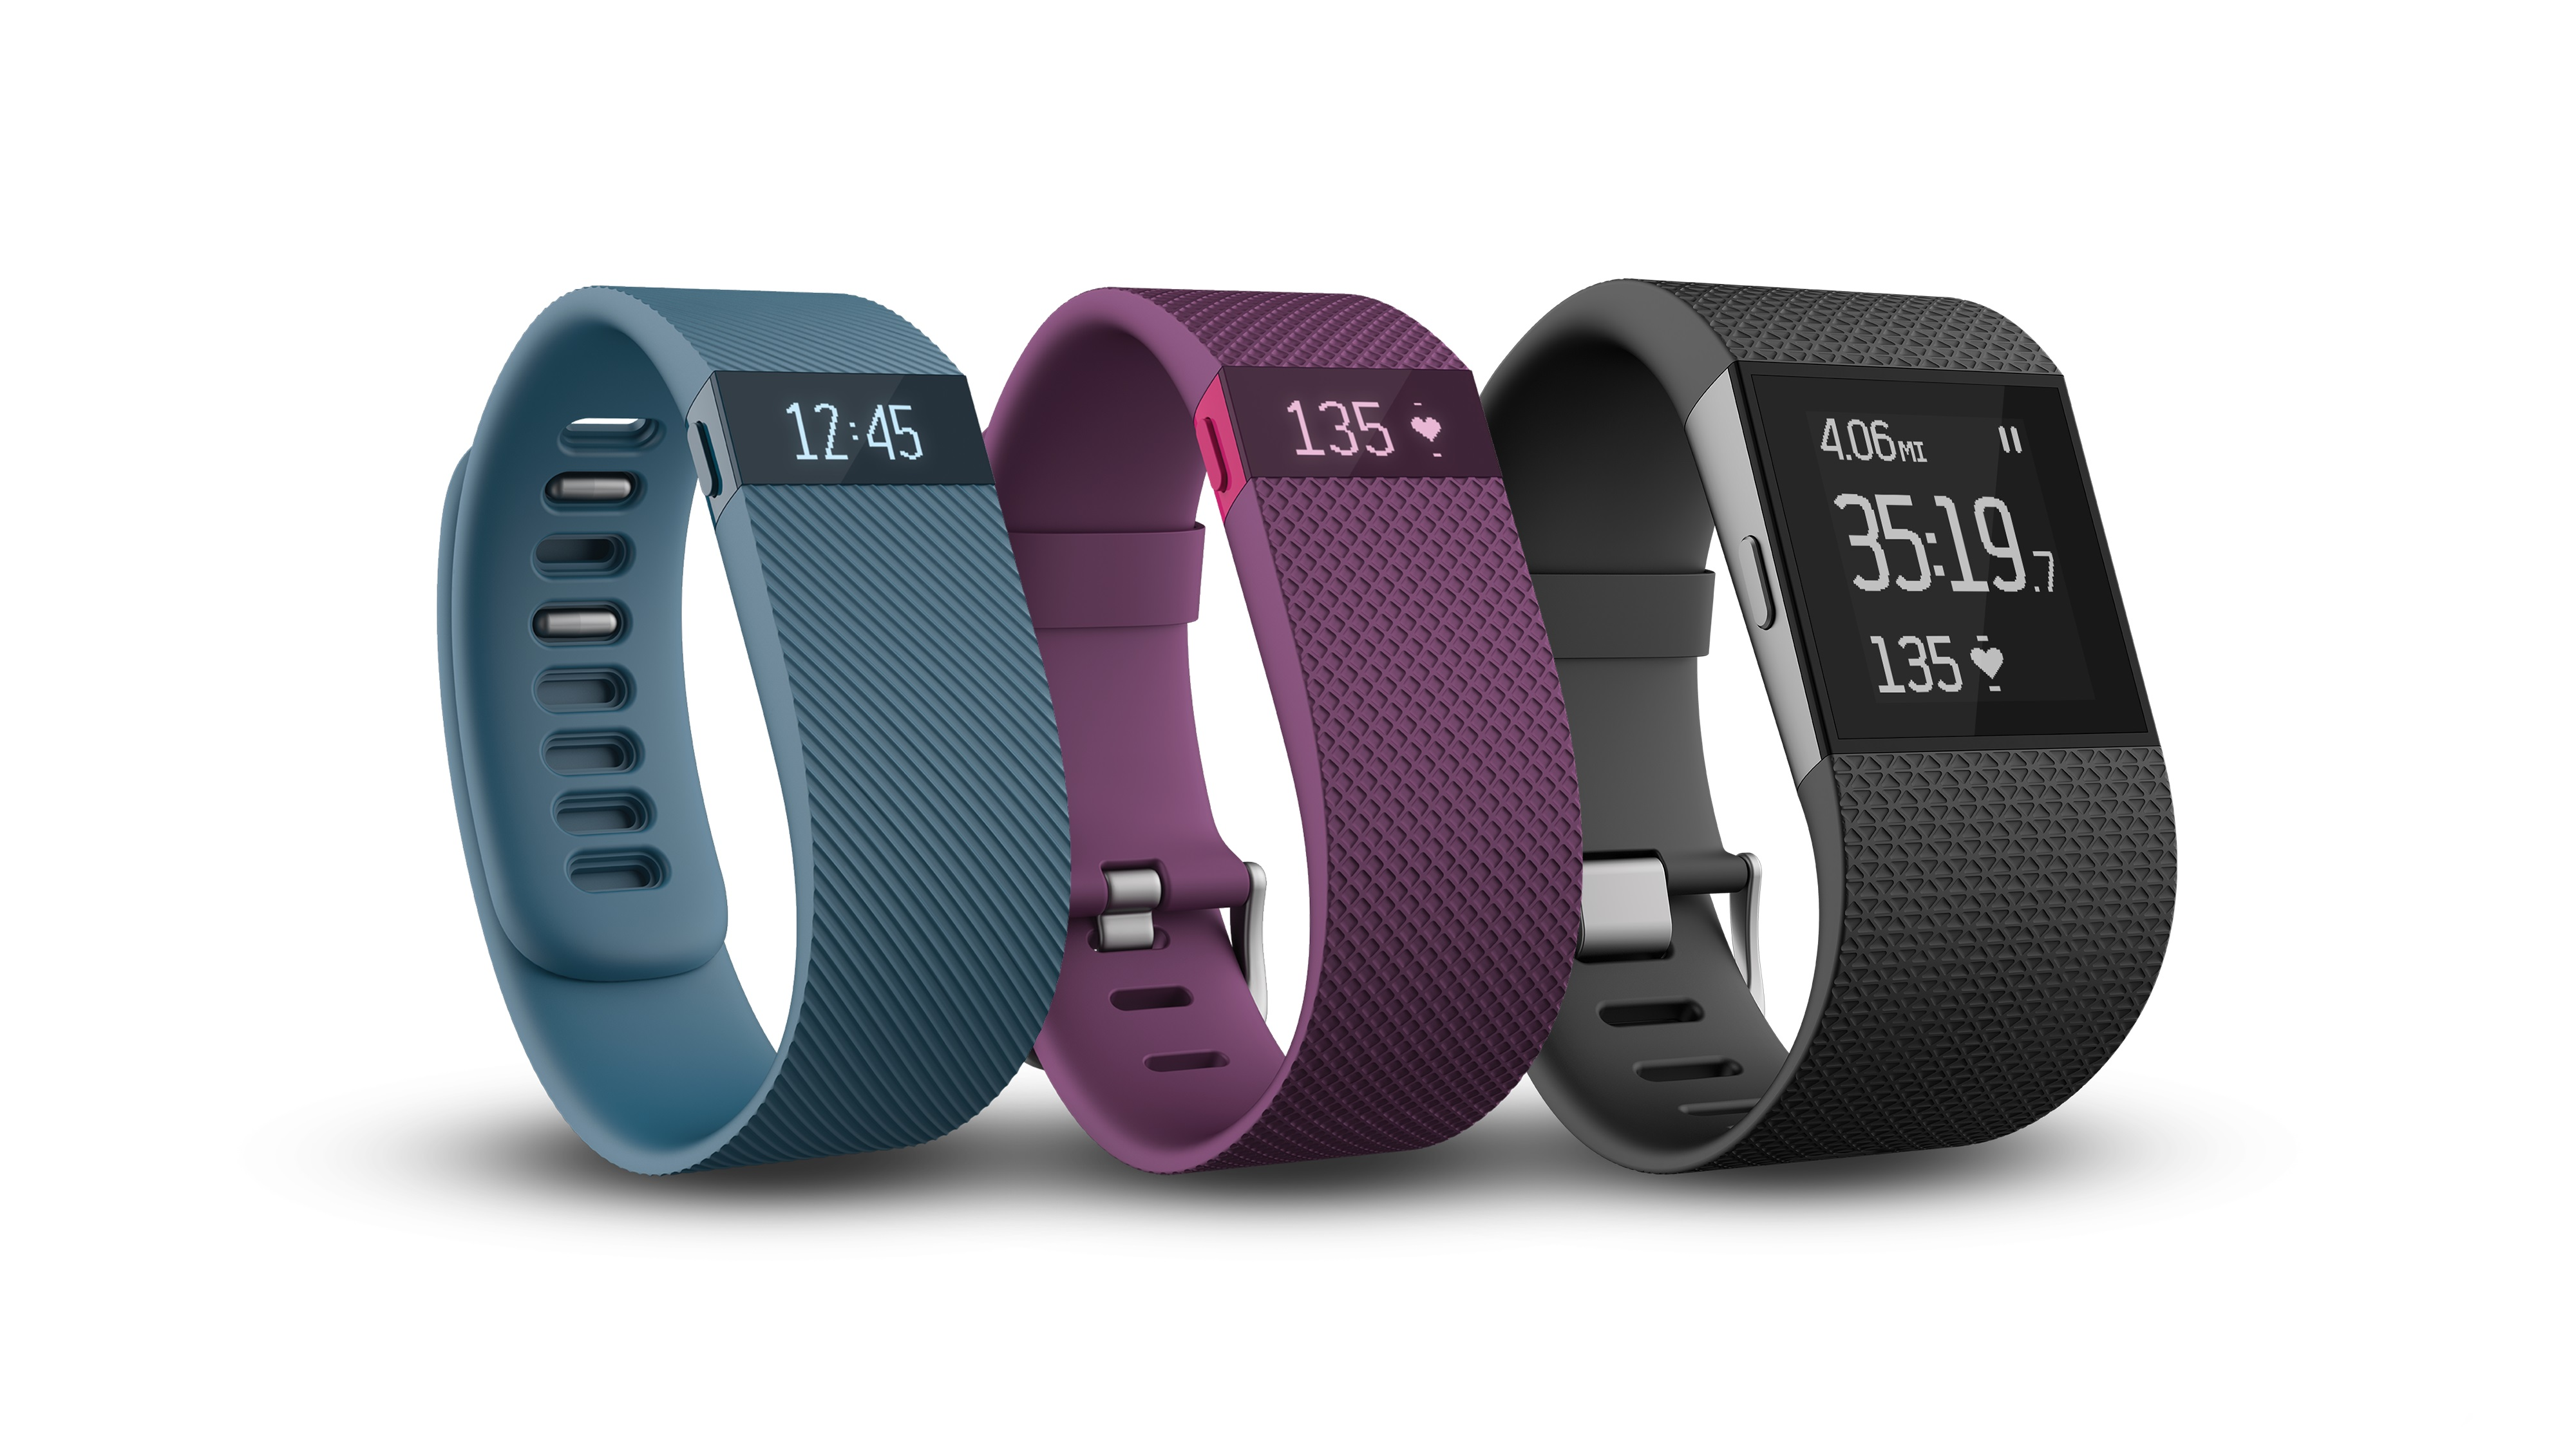 fitbit-charge-chargehr-surge Fitbit stellt neue Tracker vor: Charge, Charge HR & Surge ab 130 € Apple iOS Gadgets Google Android Shortnews Technology Windows Phone